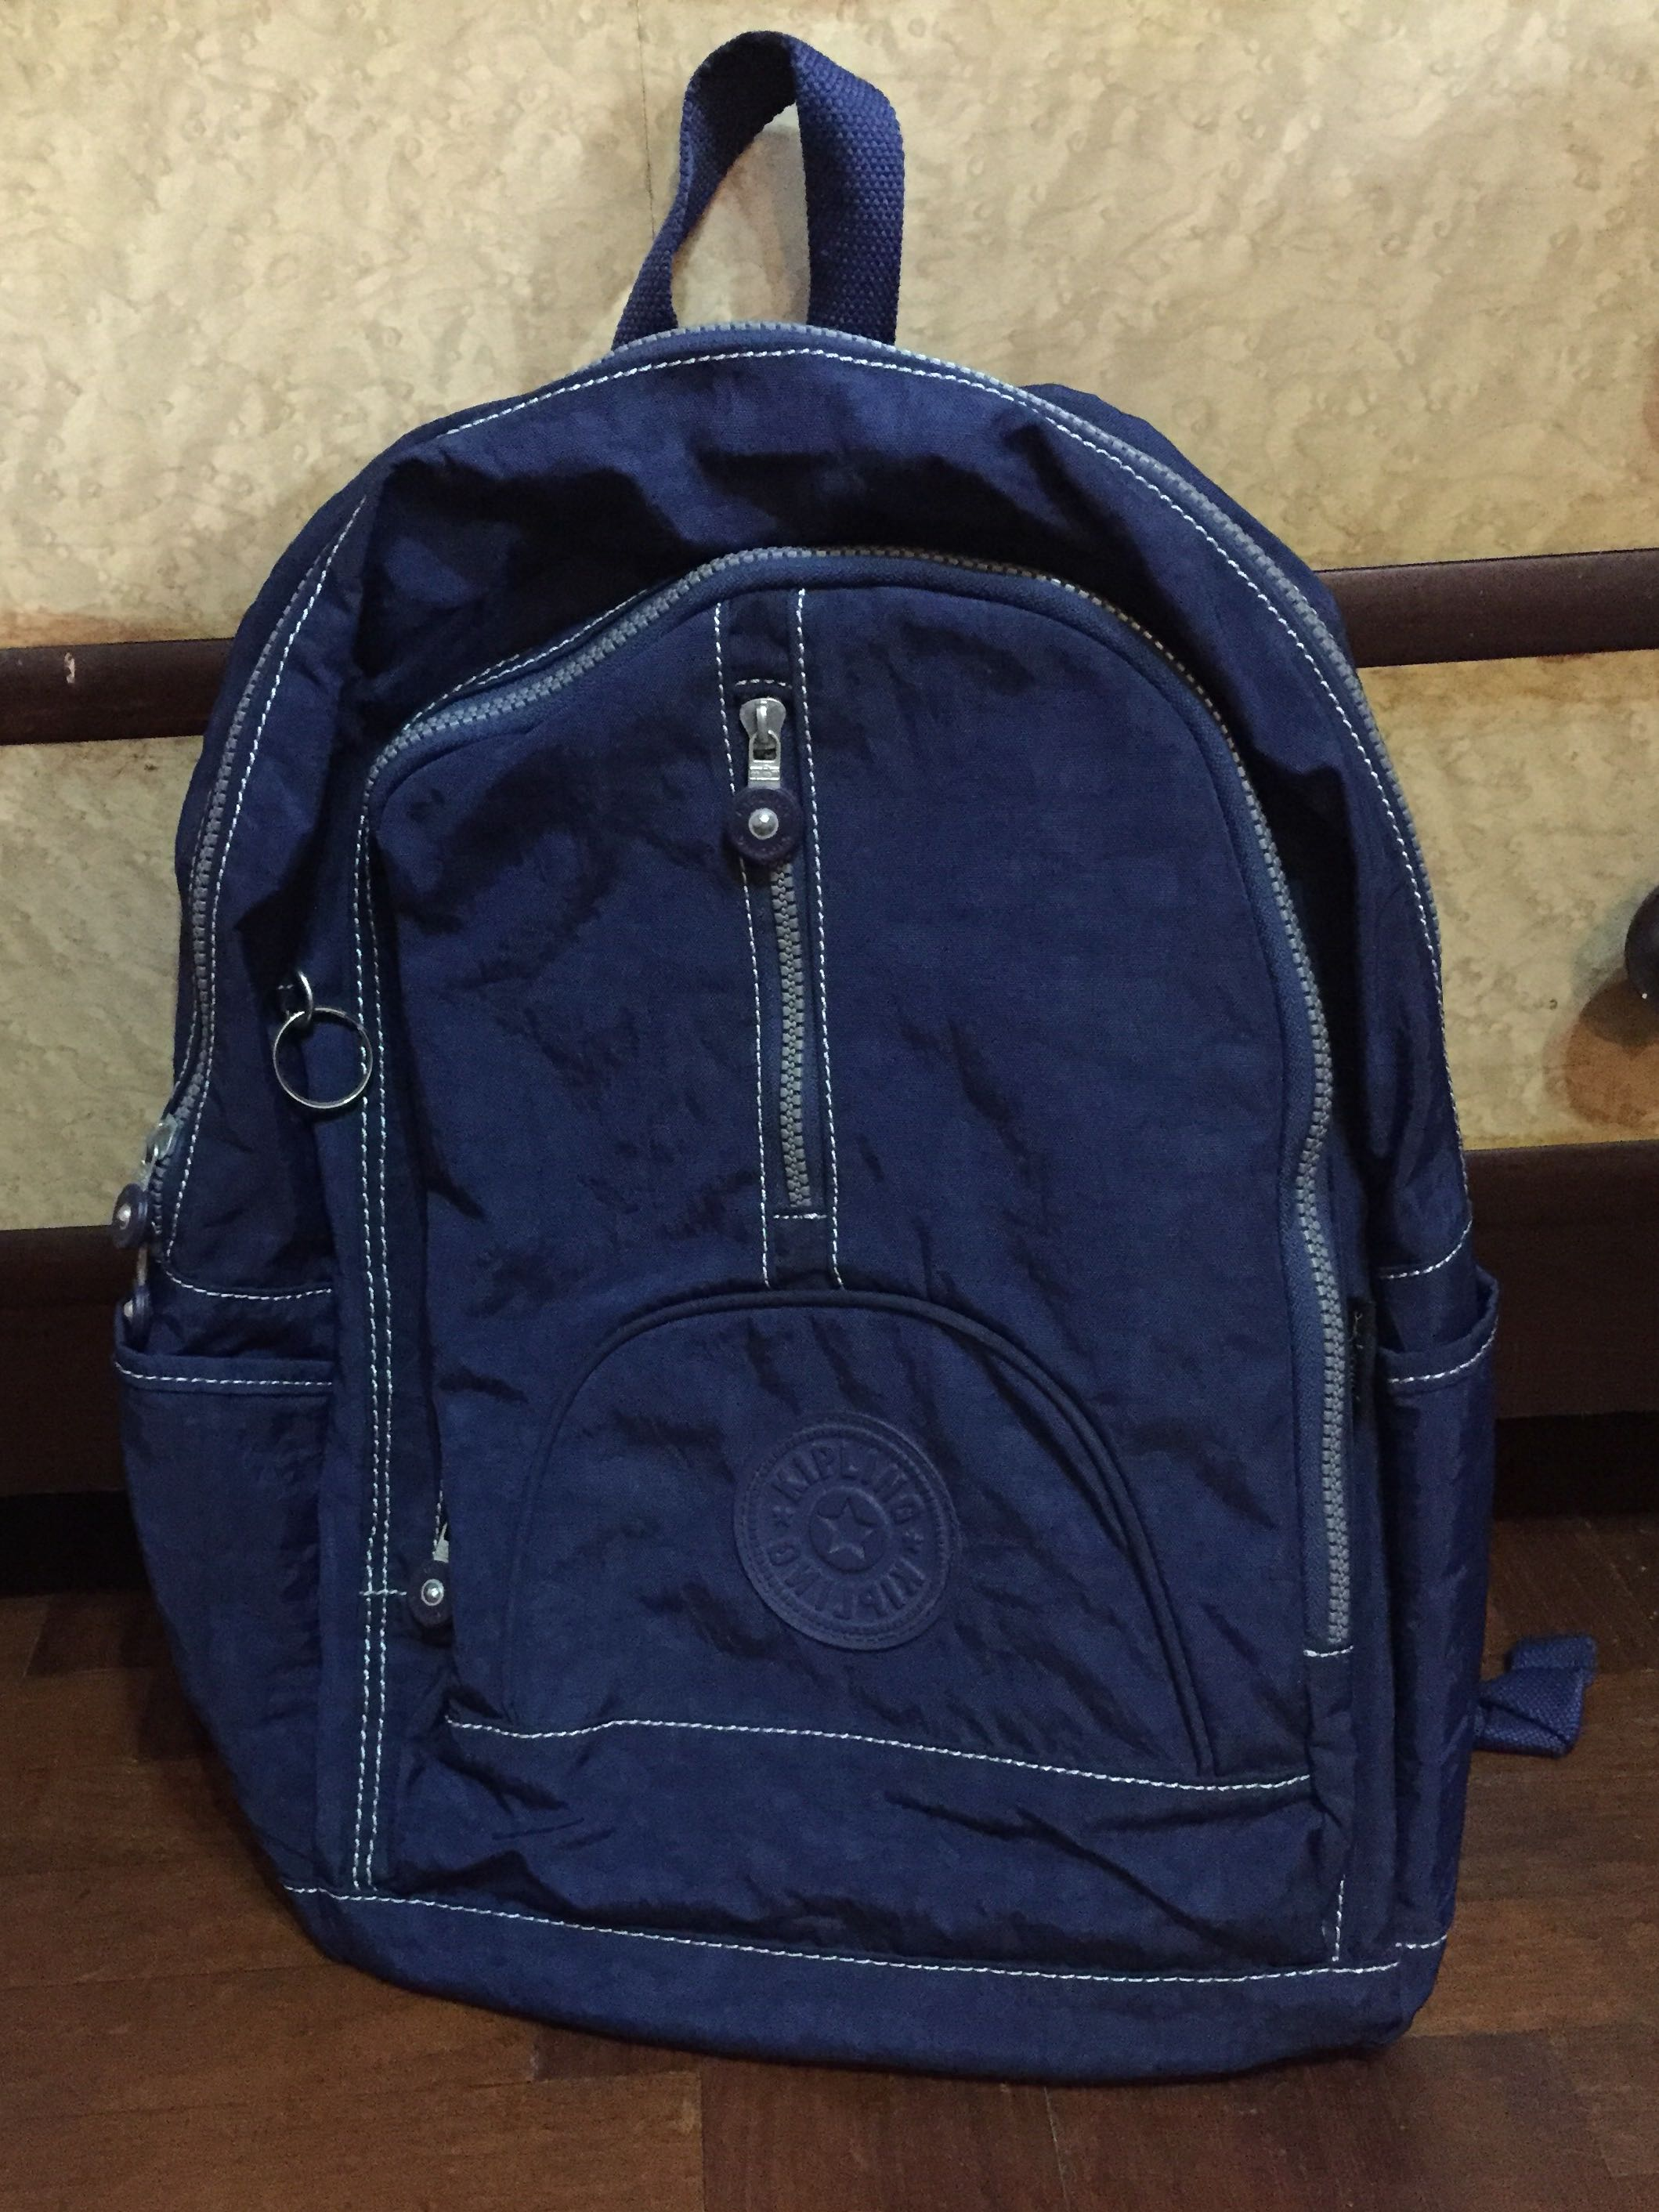 89dbe3068a Blue Kipling Backpack, Men's Fashion, Bags & Wallets, Backpacks on ...